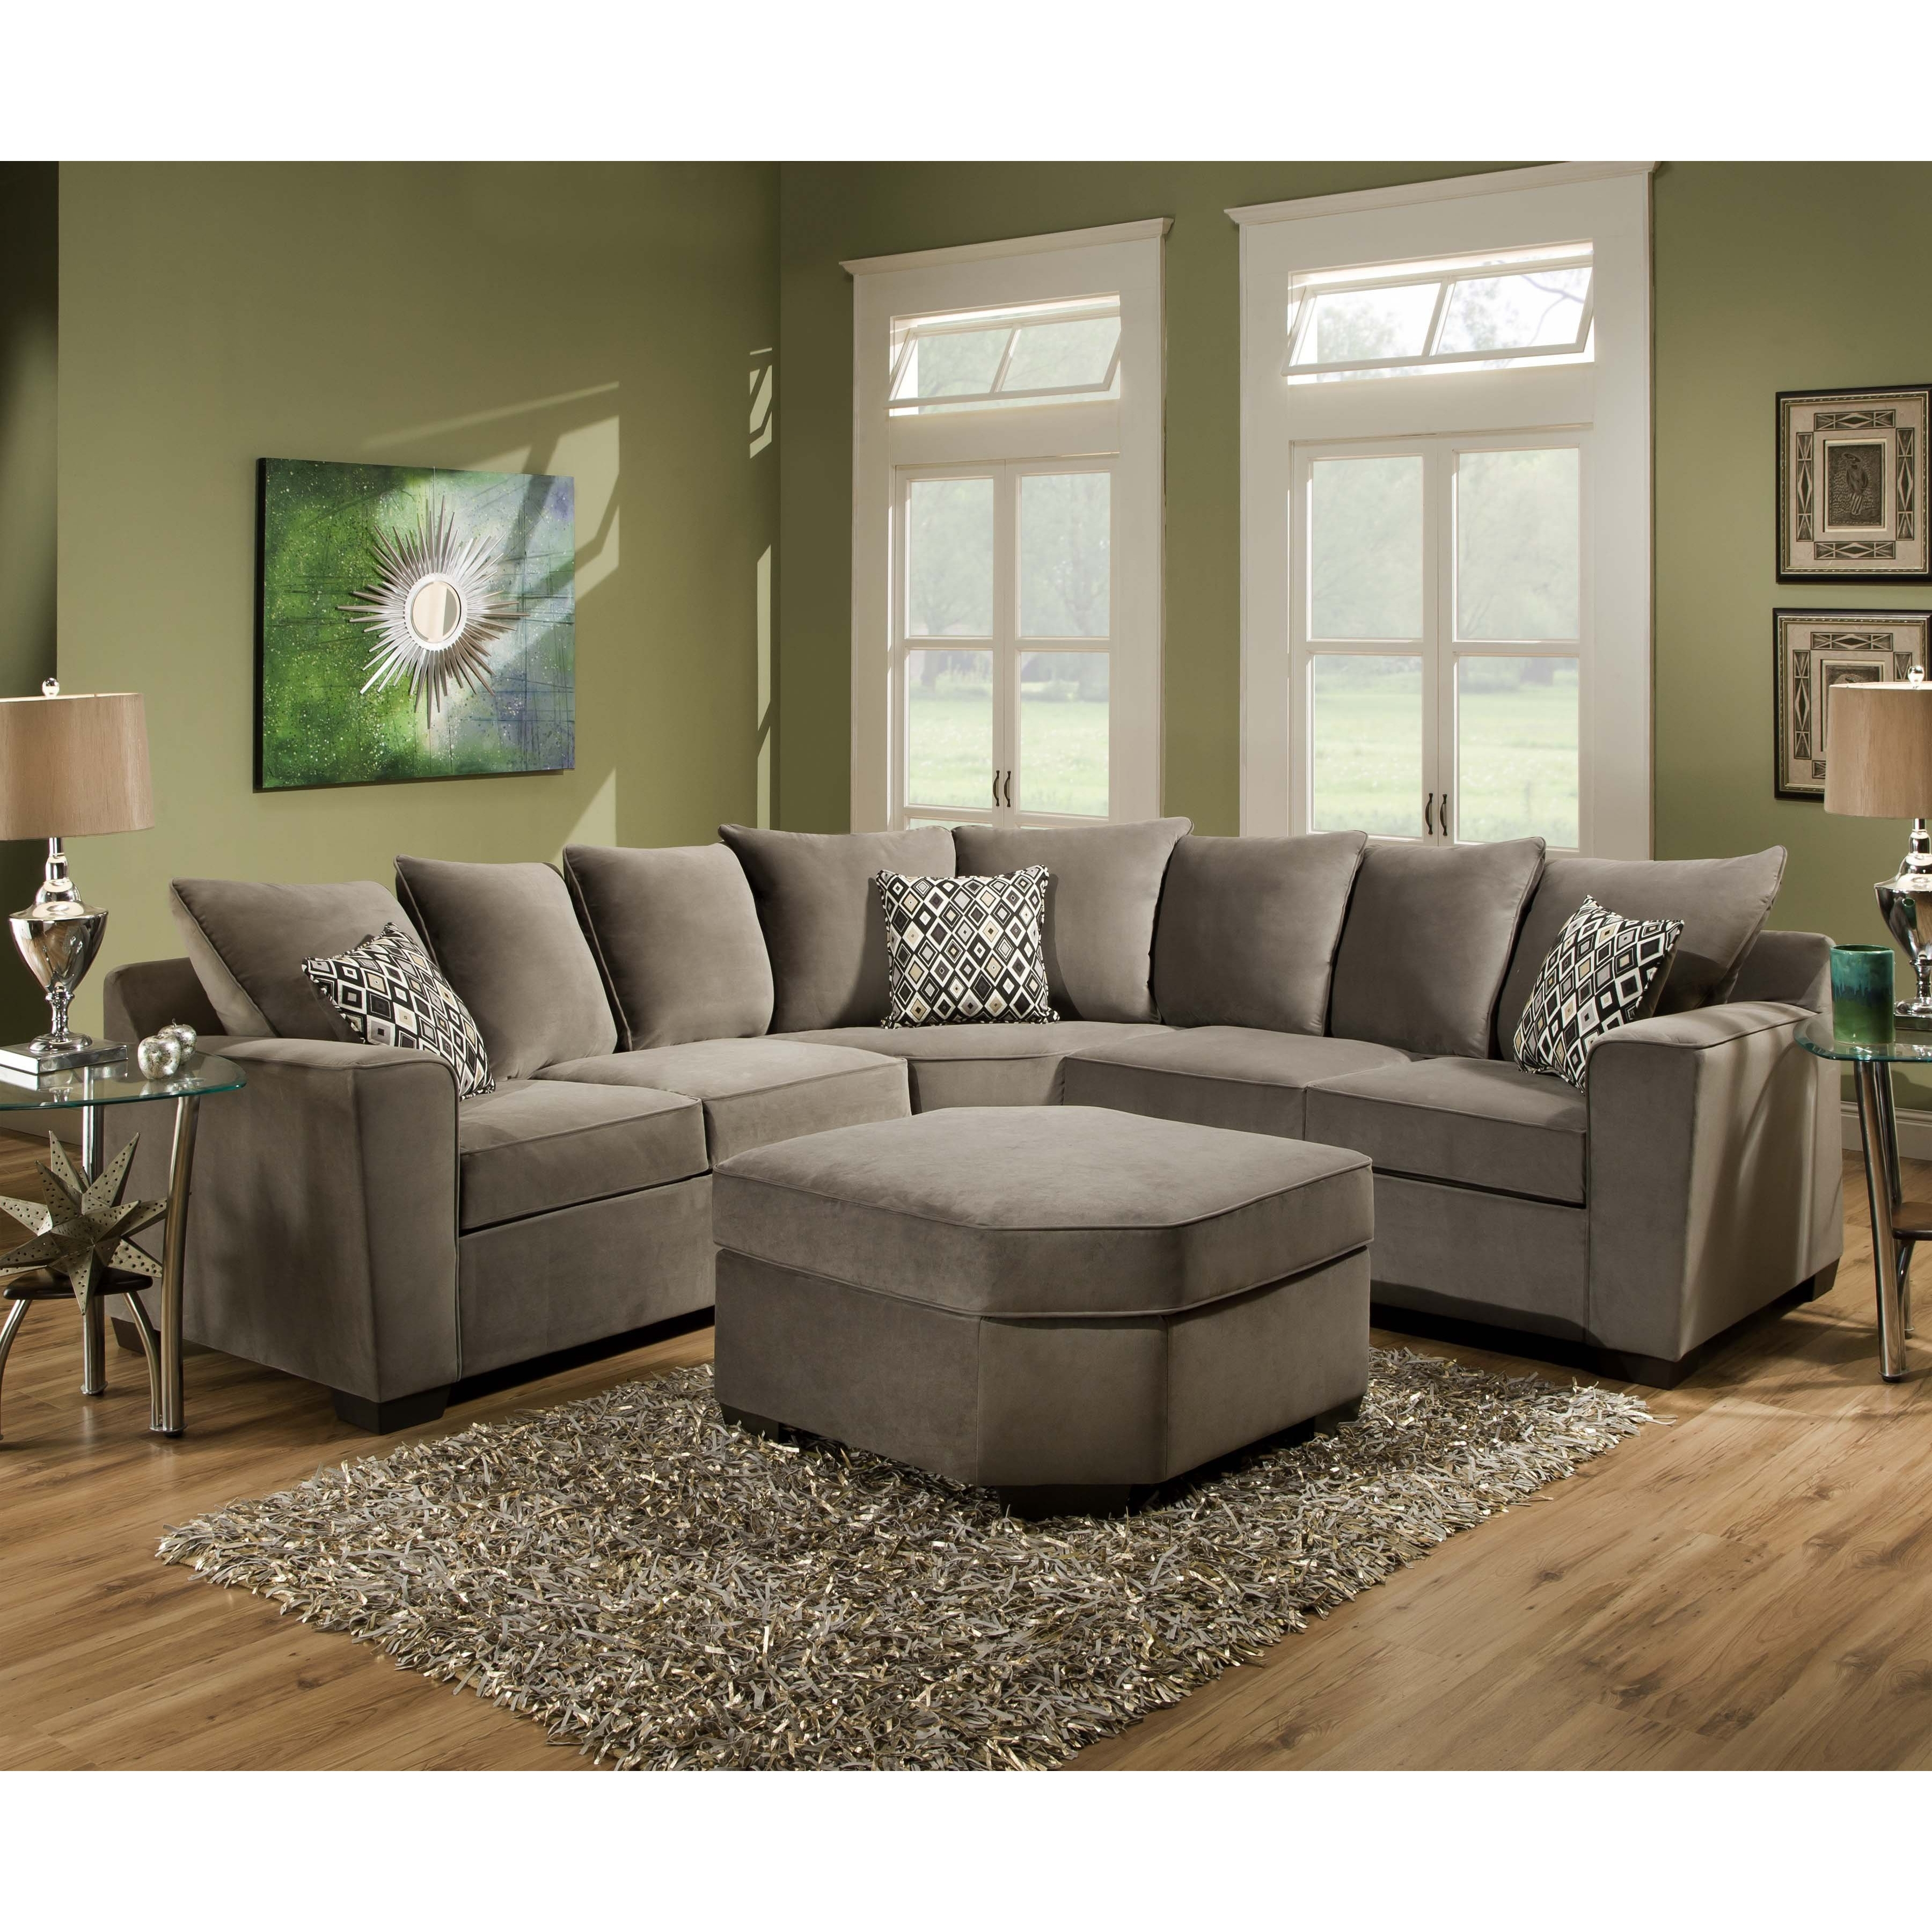 10 Photos Canada Sectional Sofas For Small Spaces